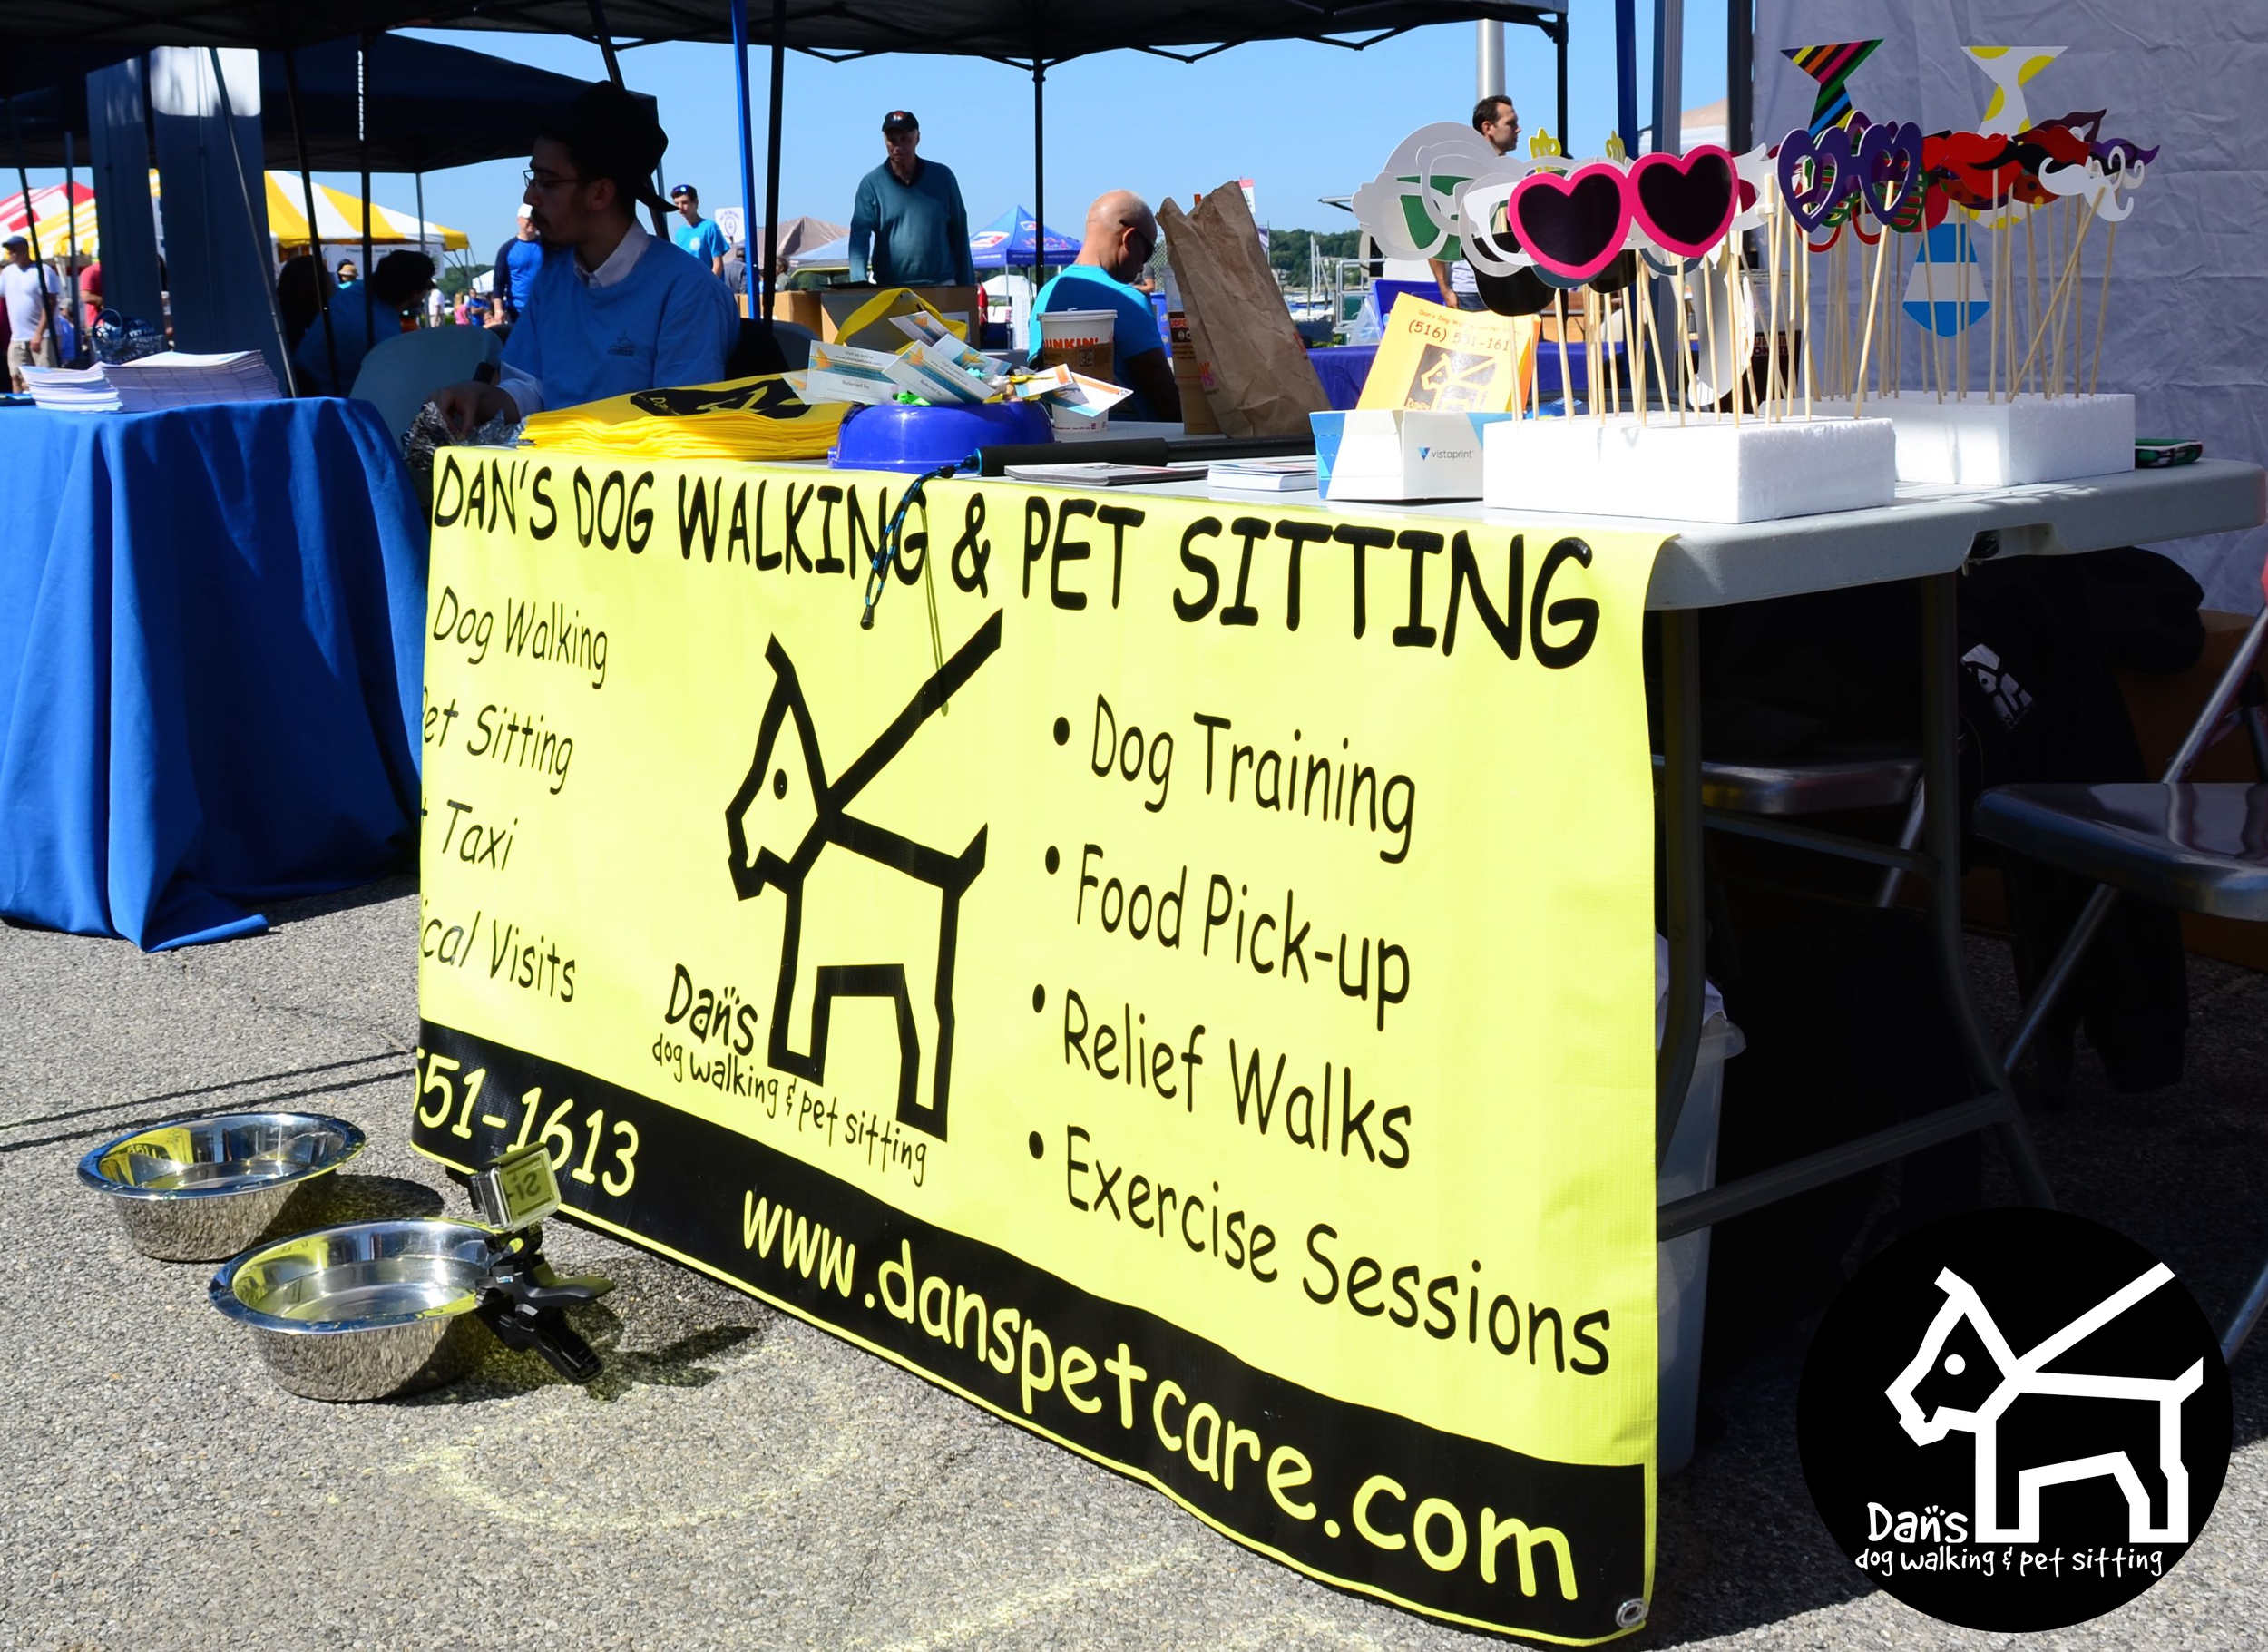 Our Booth at Dan's Dog Walking and Pet Sitting Doggie Photo Booth at Harbor Fest 2015.jpg